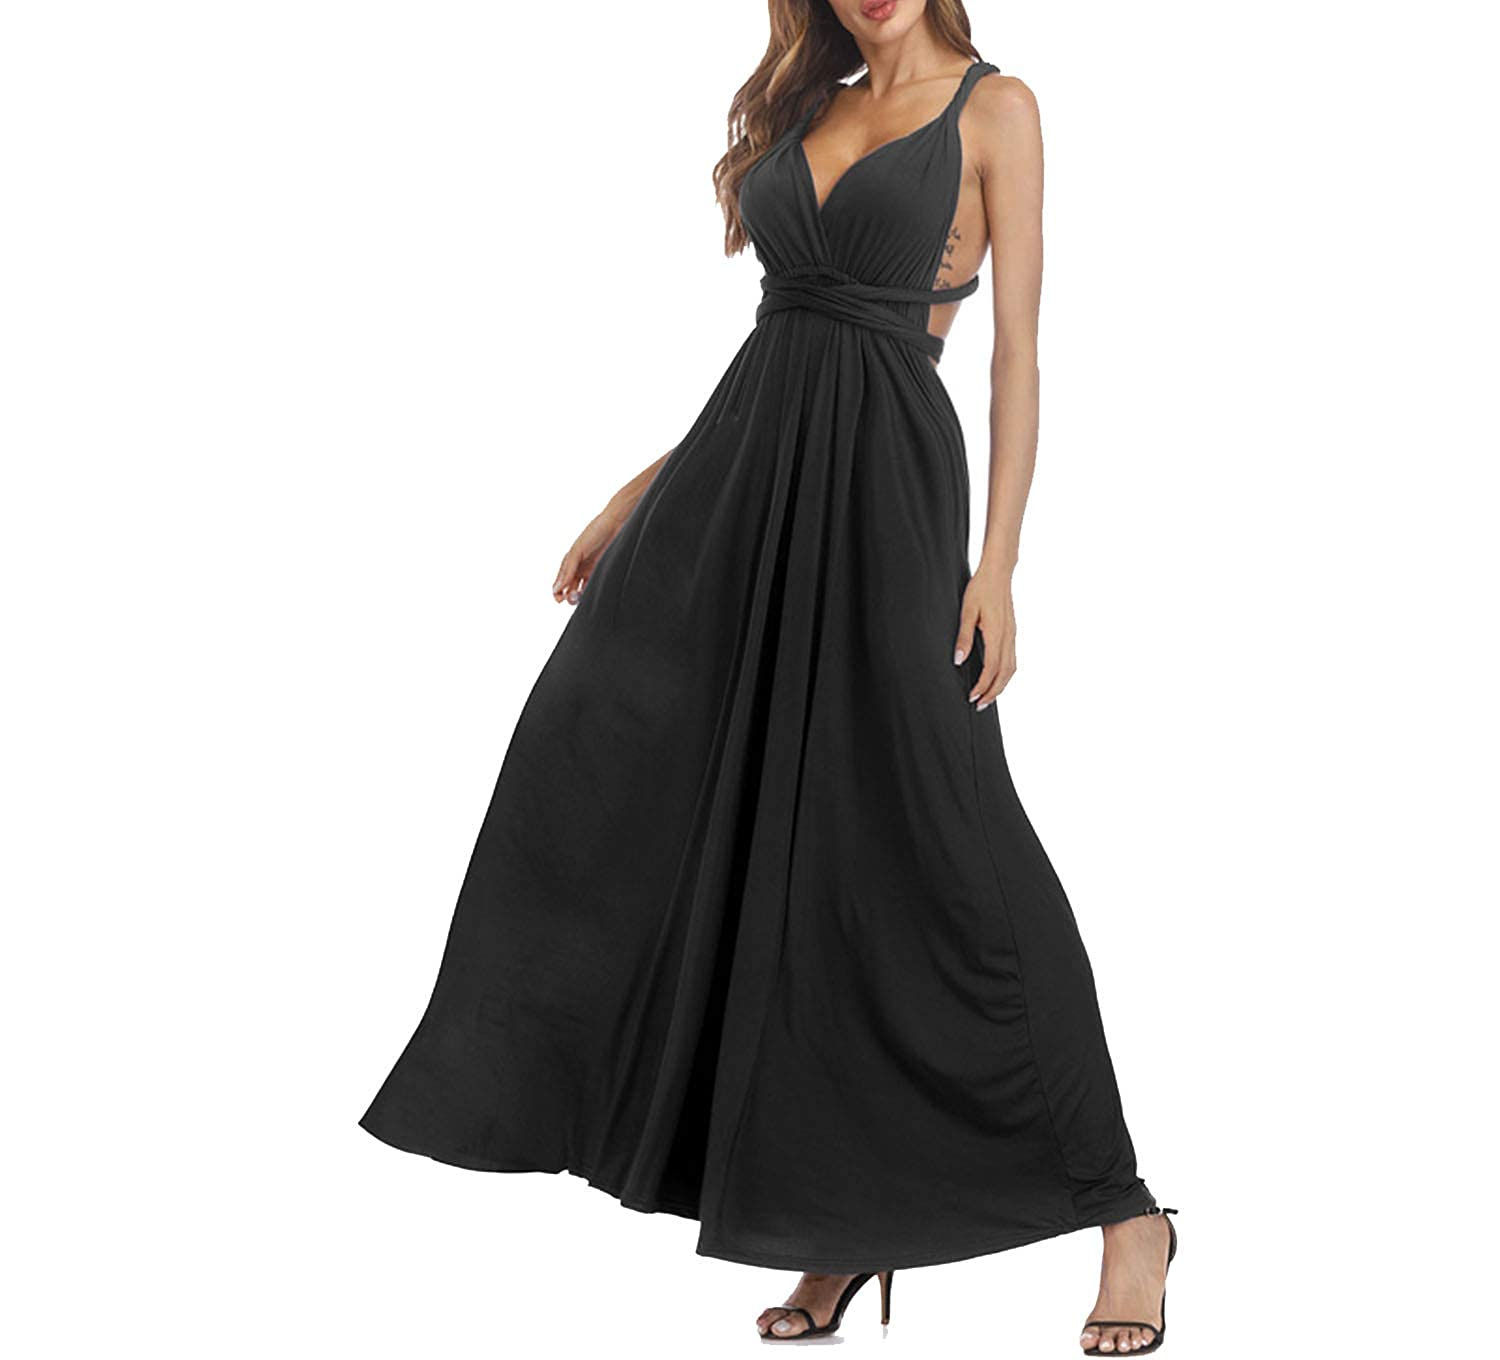 TheUniqueHouse 20 Colors Summer Maxi Party Dress Multiway Fashion Sleeveless Convertible Infinity Swing Dress,Black,XL